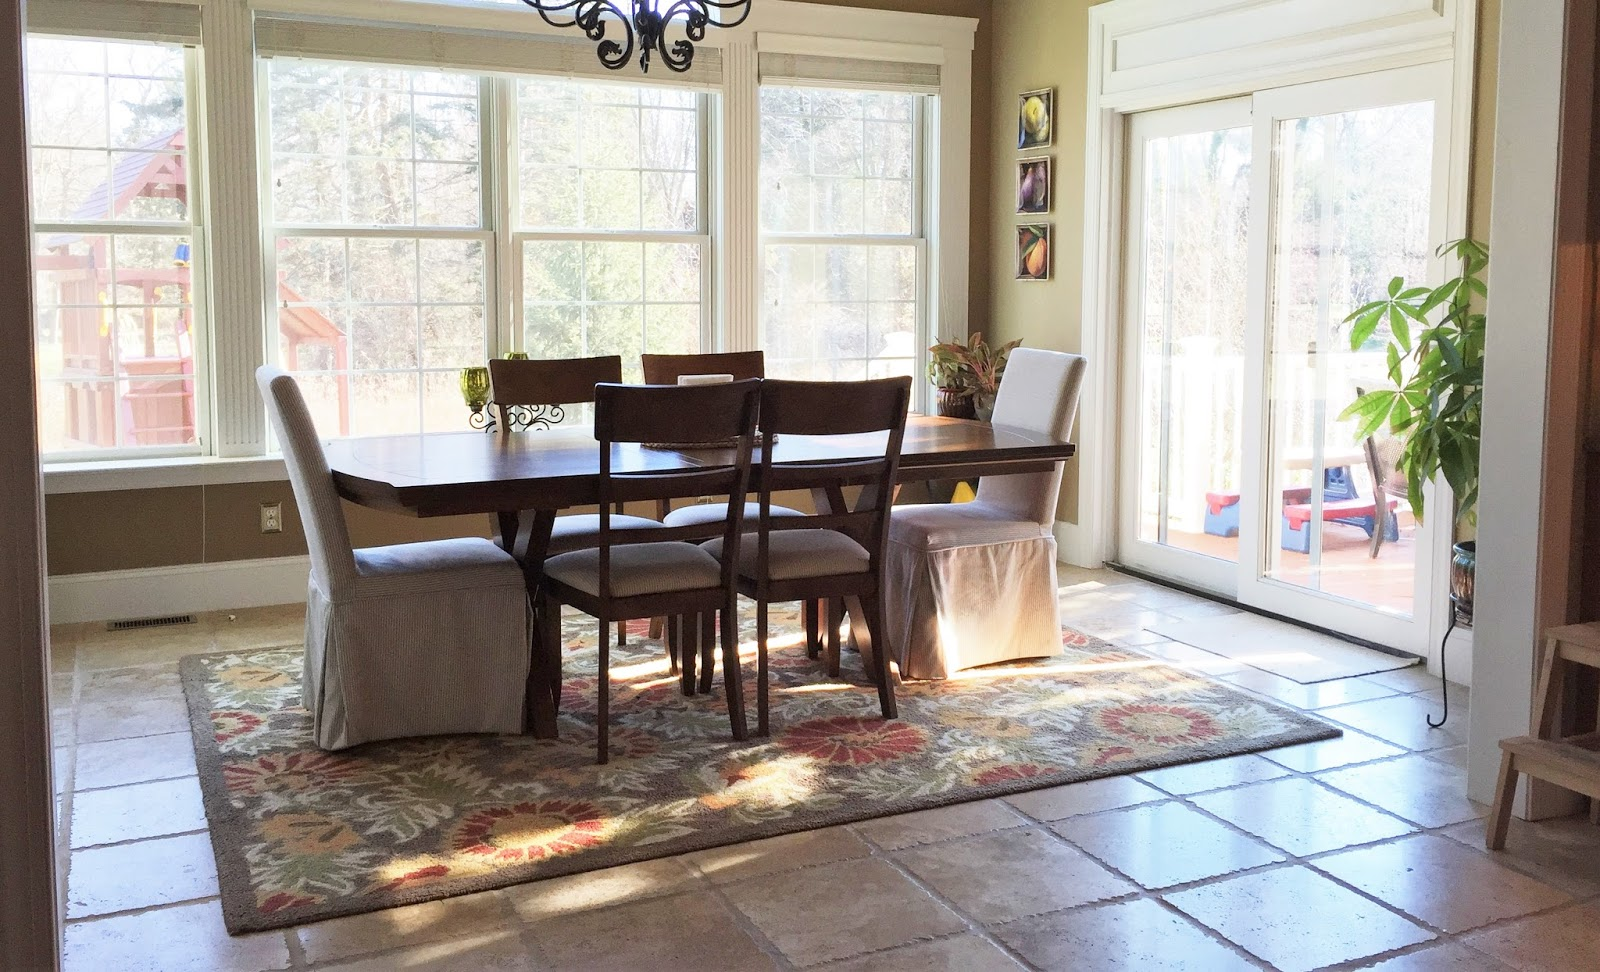 therefore we set out to create a light and bright sunroom full of cozy upholstery bleached wood finishes and interesting texture - Sunroom Dining Room